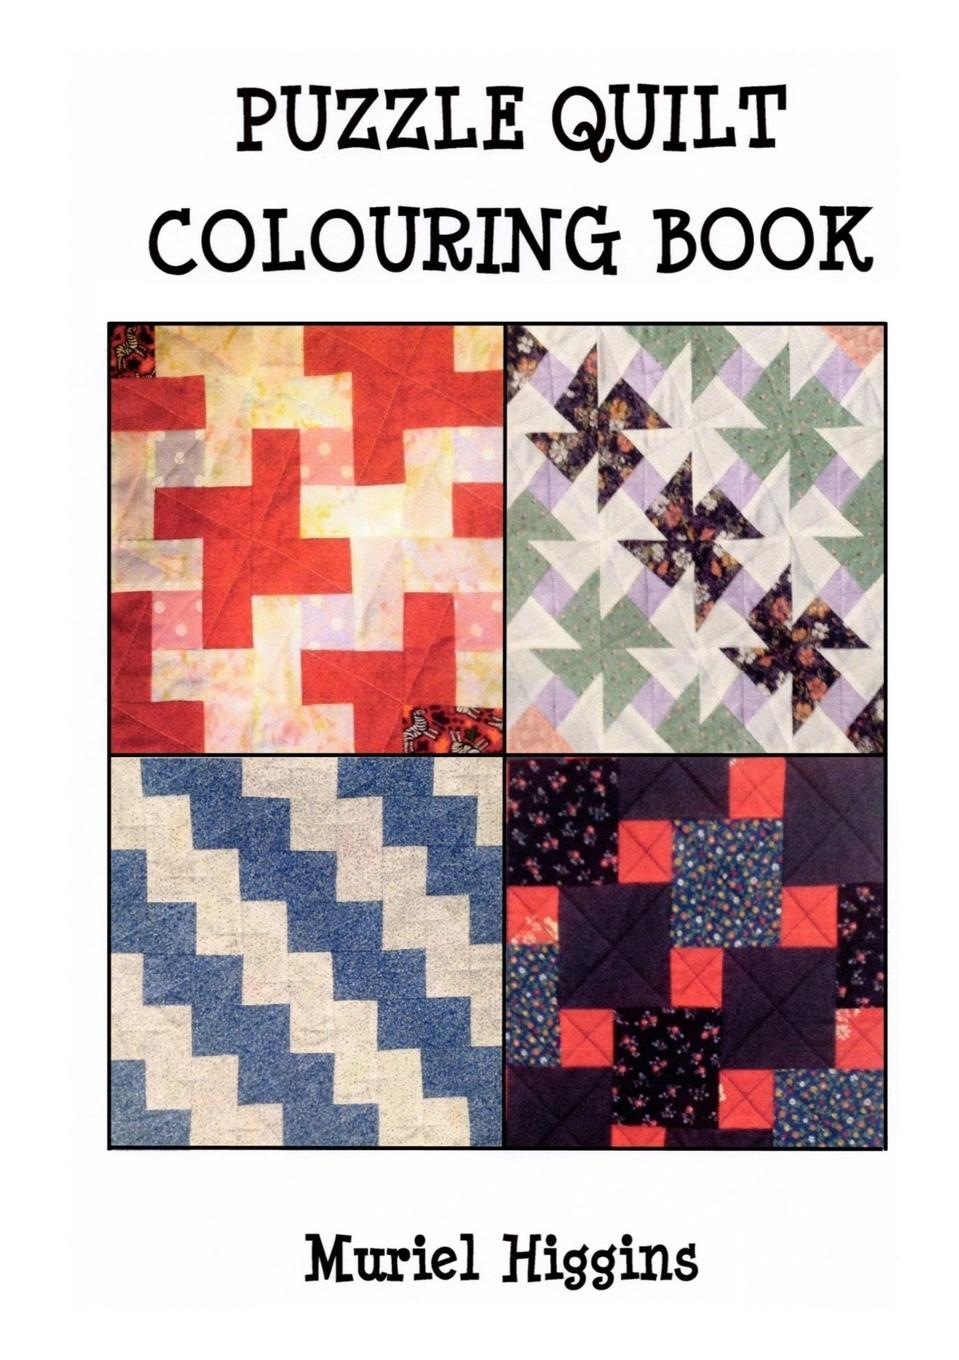 Muriel Higgins Puzzle Quilt Colouring Book colouring book jungle with rub down transfers